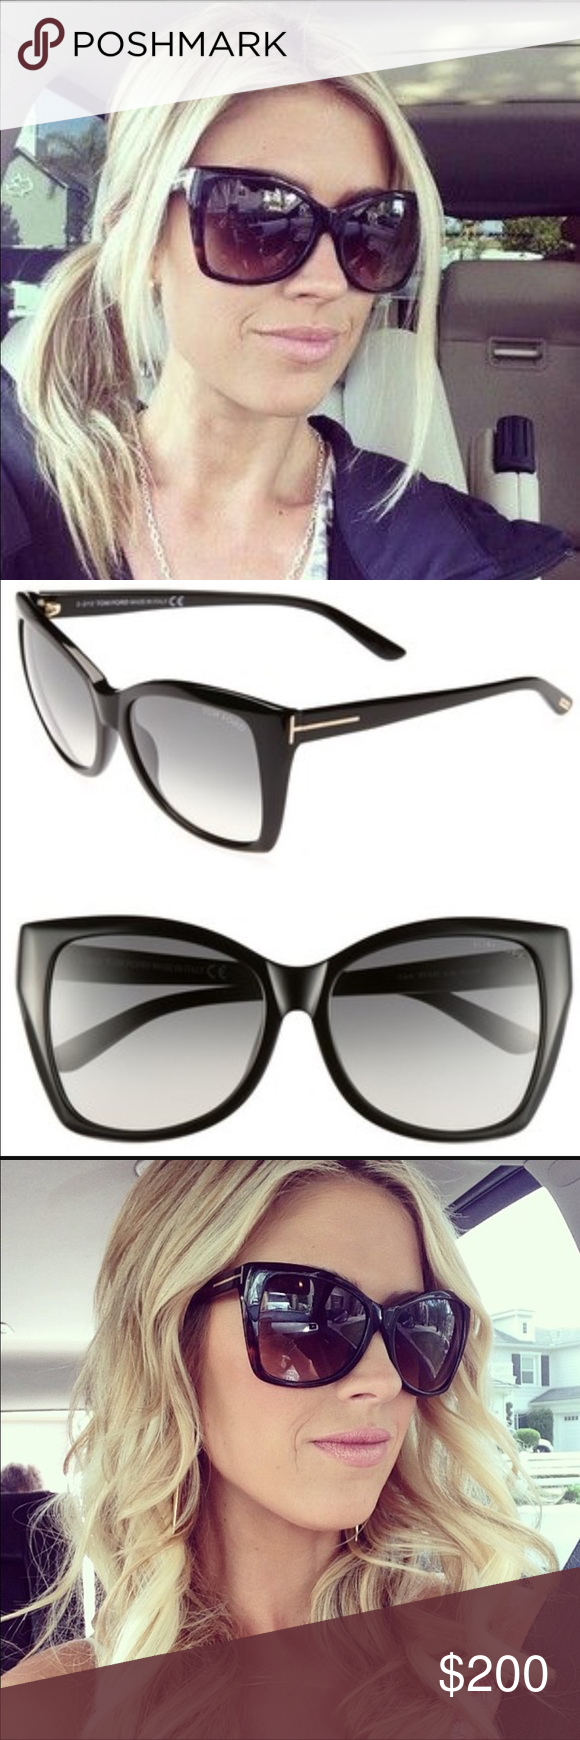 9f8f00093efb4 IN SEARCH OF TF Carli Sunglasses IN SEARCH OF i am not selling these so do